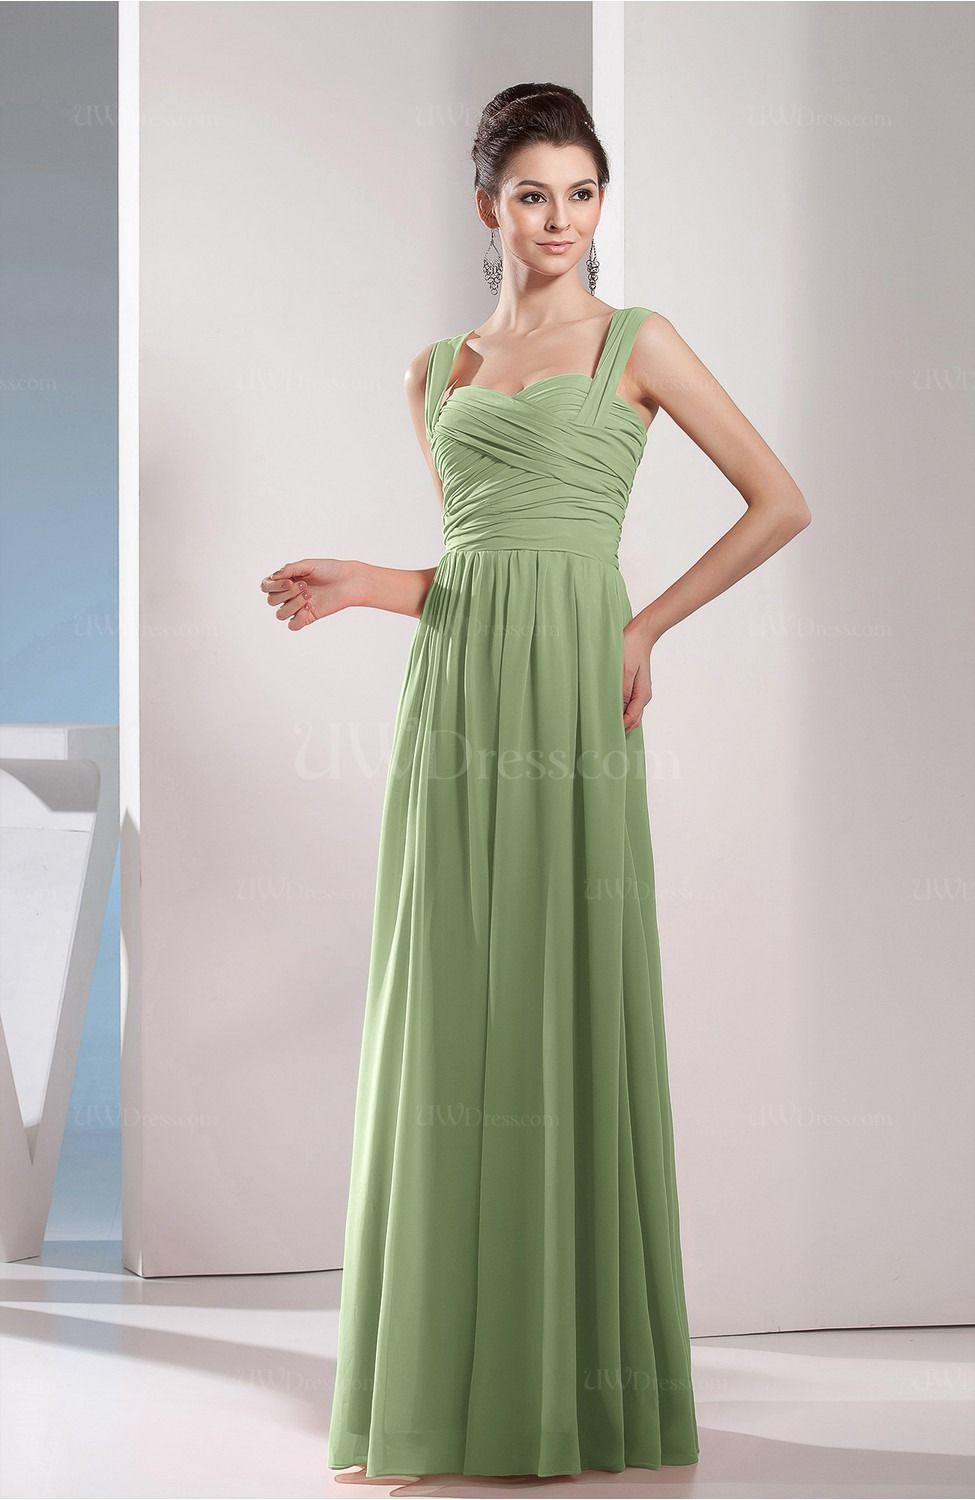 Ideas Sage Green Wedding Dress Dresses Browse Pictures And High Quality Photo 6